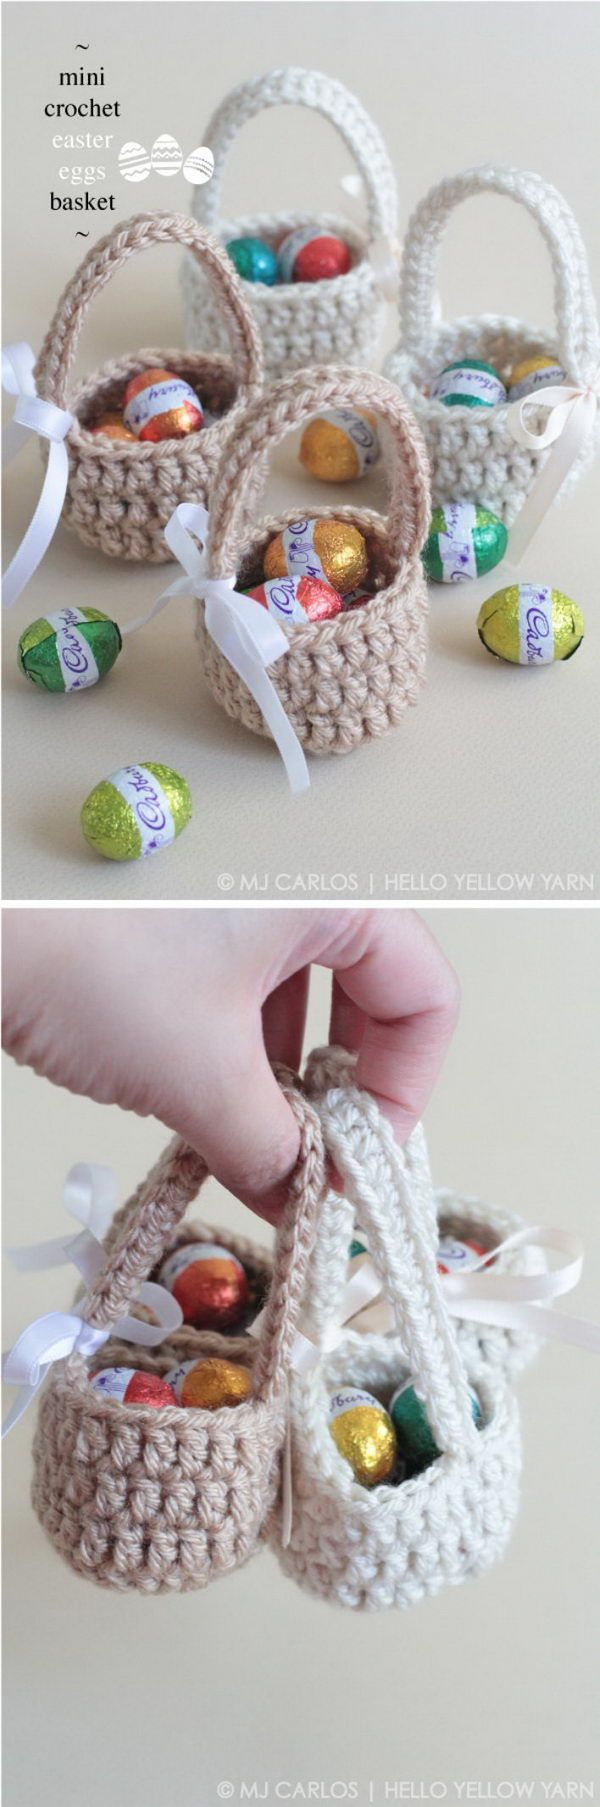 Mini Crochet Easter Eggs Basket #CrochetEaster